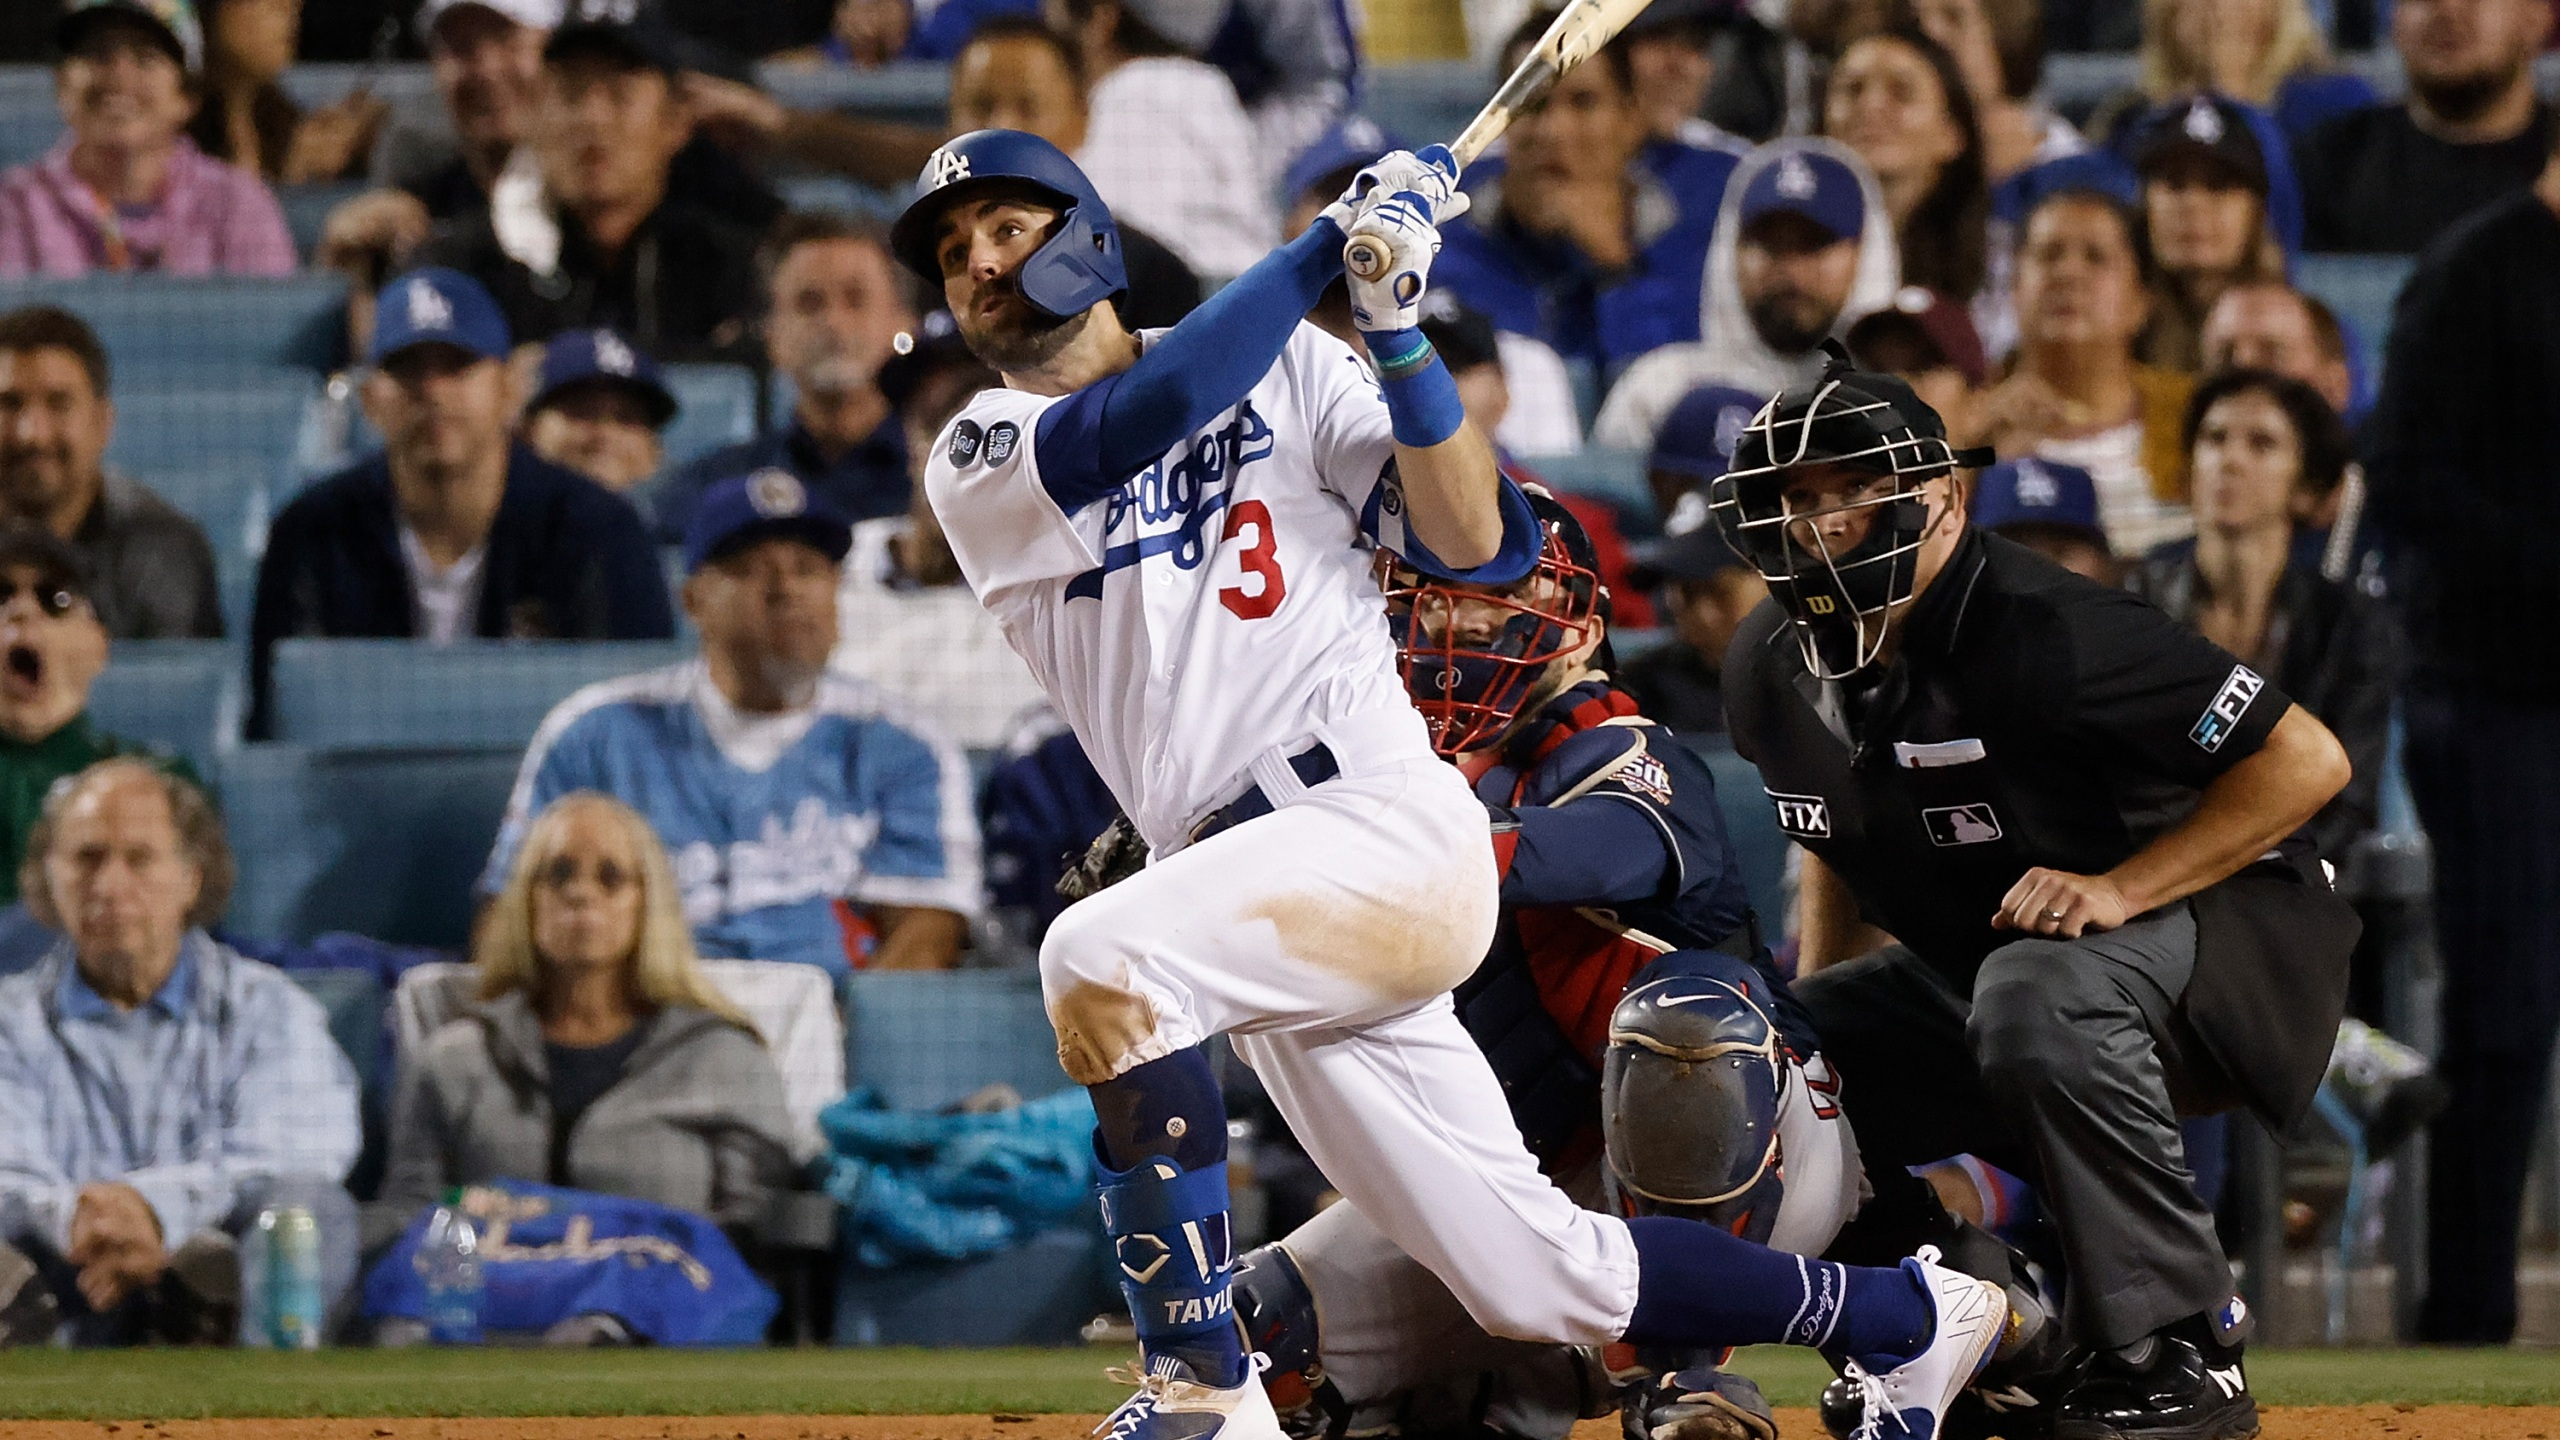 Chris Taylor #3 of the Los Angeles Dodgers hits a solo home run during the seventh inning of Game Five of the National League Championship Series against the Atlanta Braves at Dodger Stadium on Oct. 21, 2021, in Los Angeles, California. (Sean M. Haffey/Getty Images)